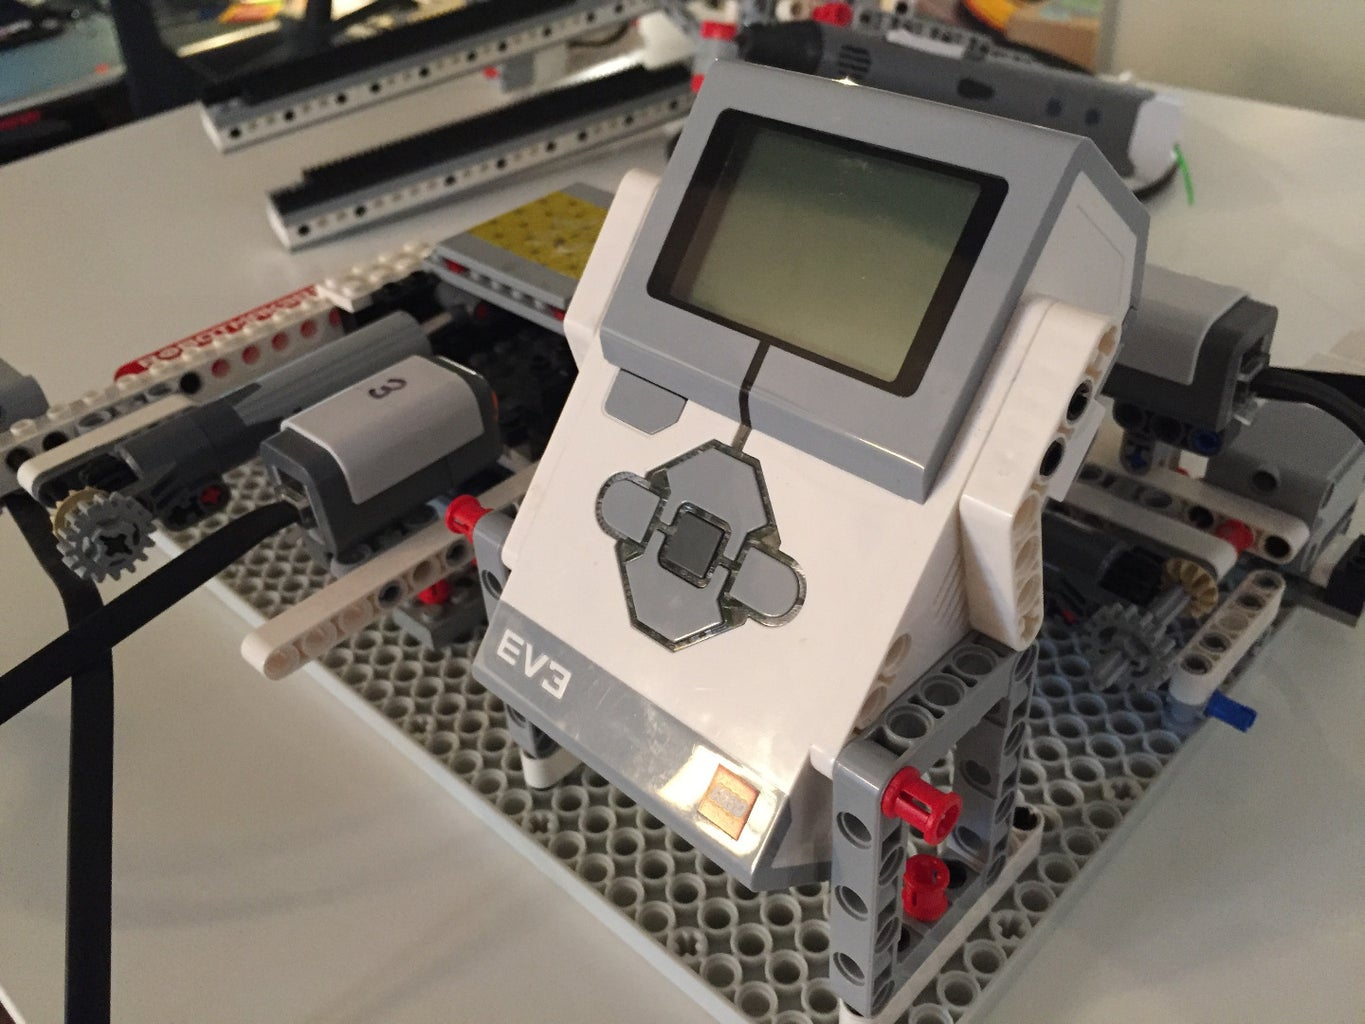 Here I Attach the EV3 Brick and the Rack Pilars on Which the 3D Pen Will Ride